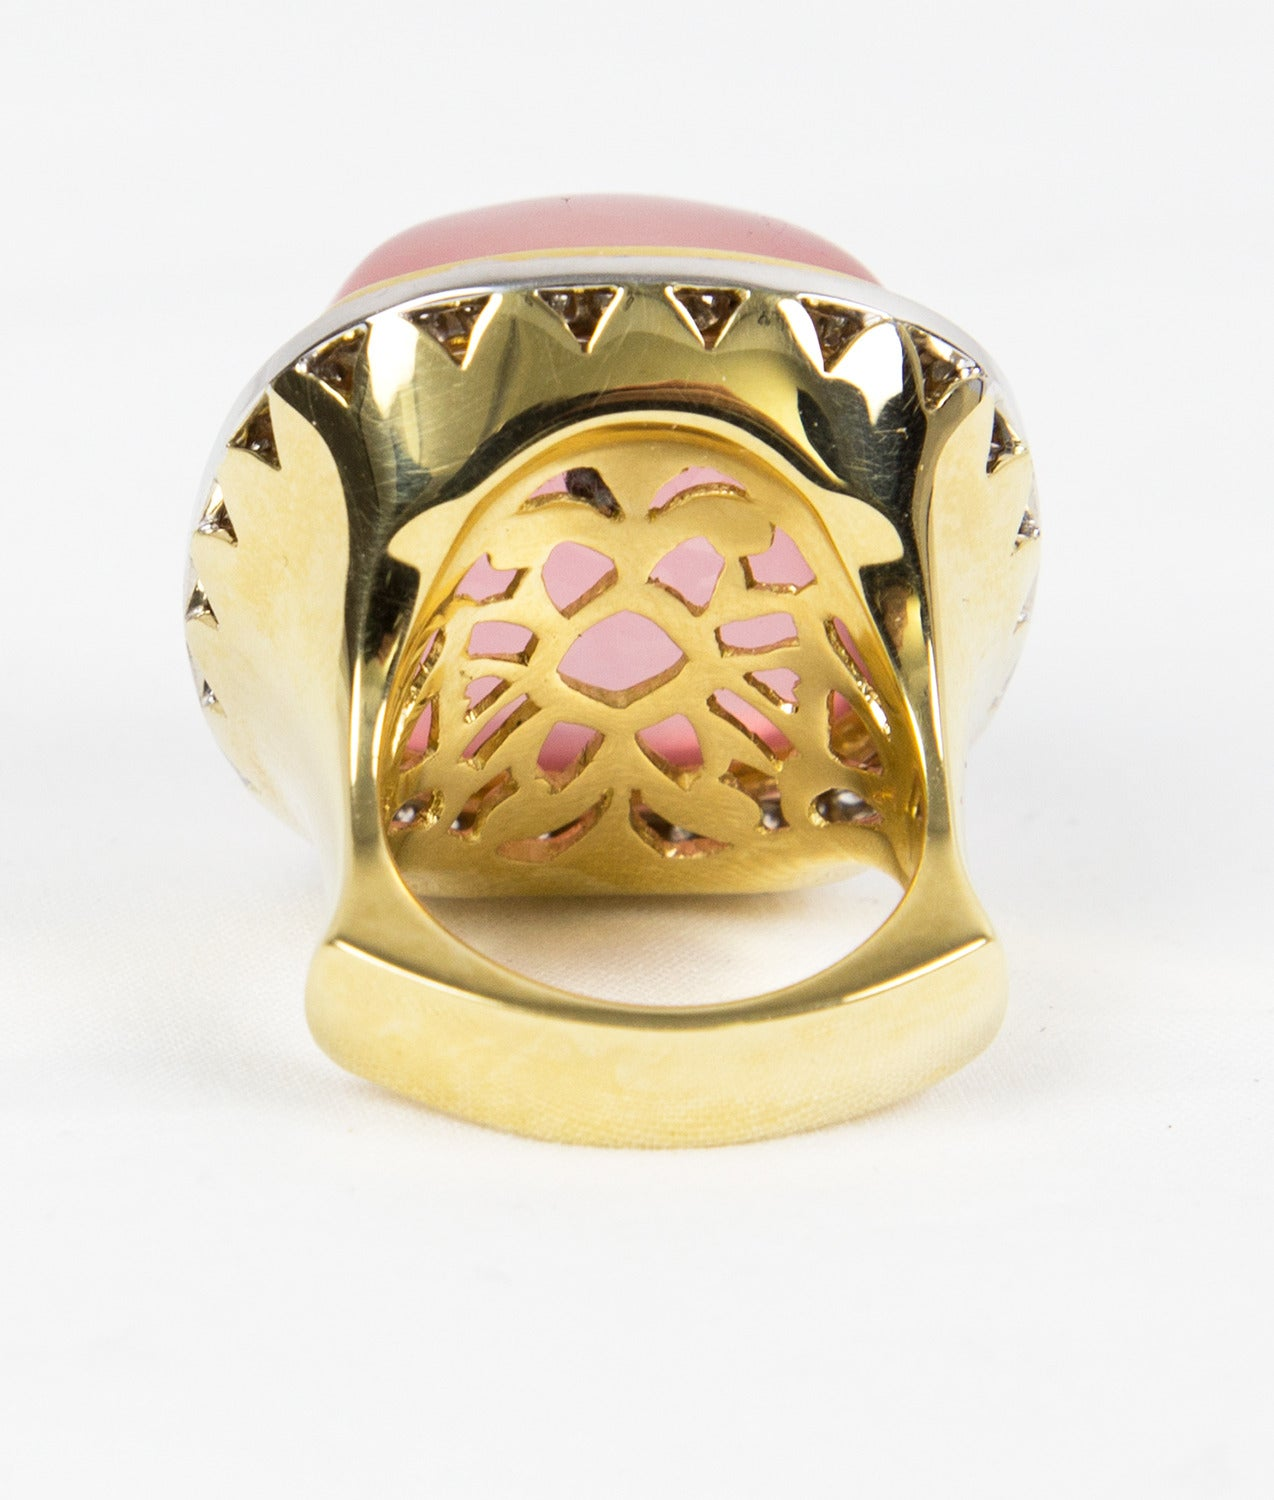 Pink Quartz Sugarloaf Diamond Gold Ring 5